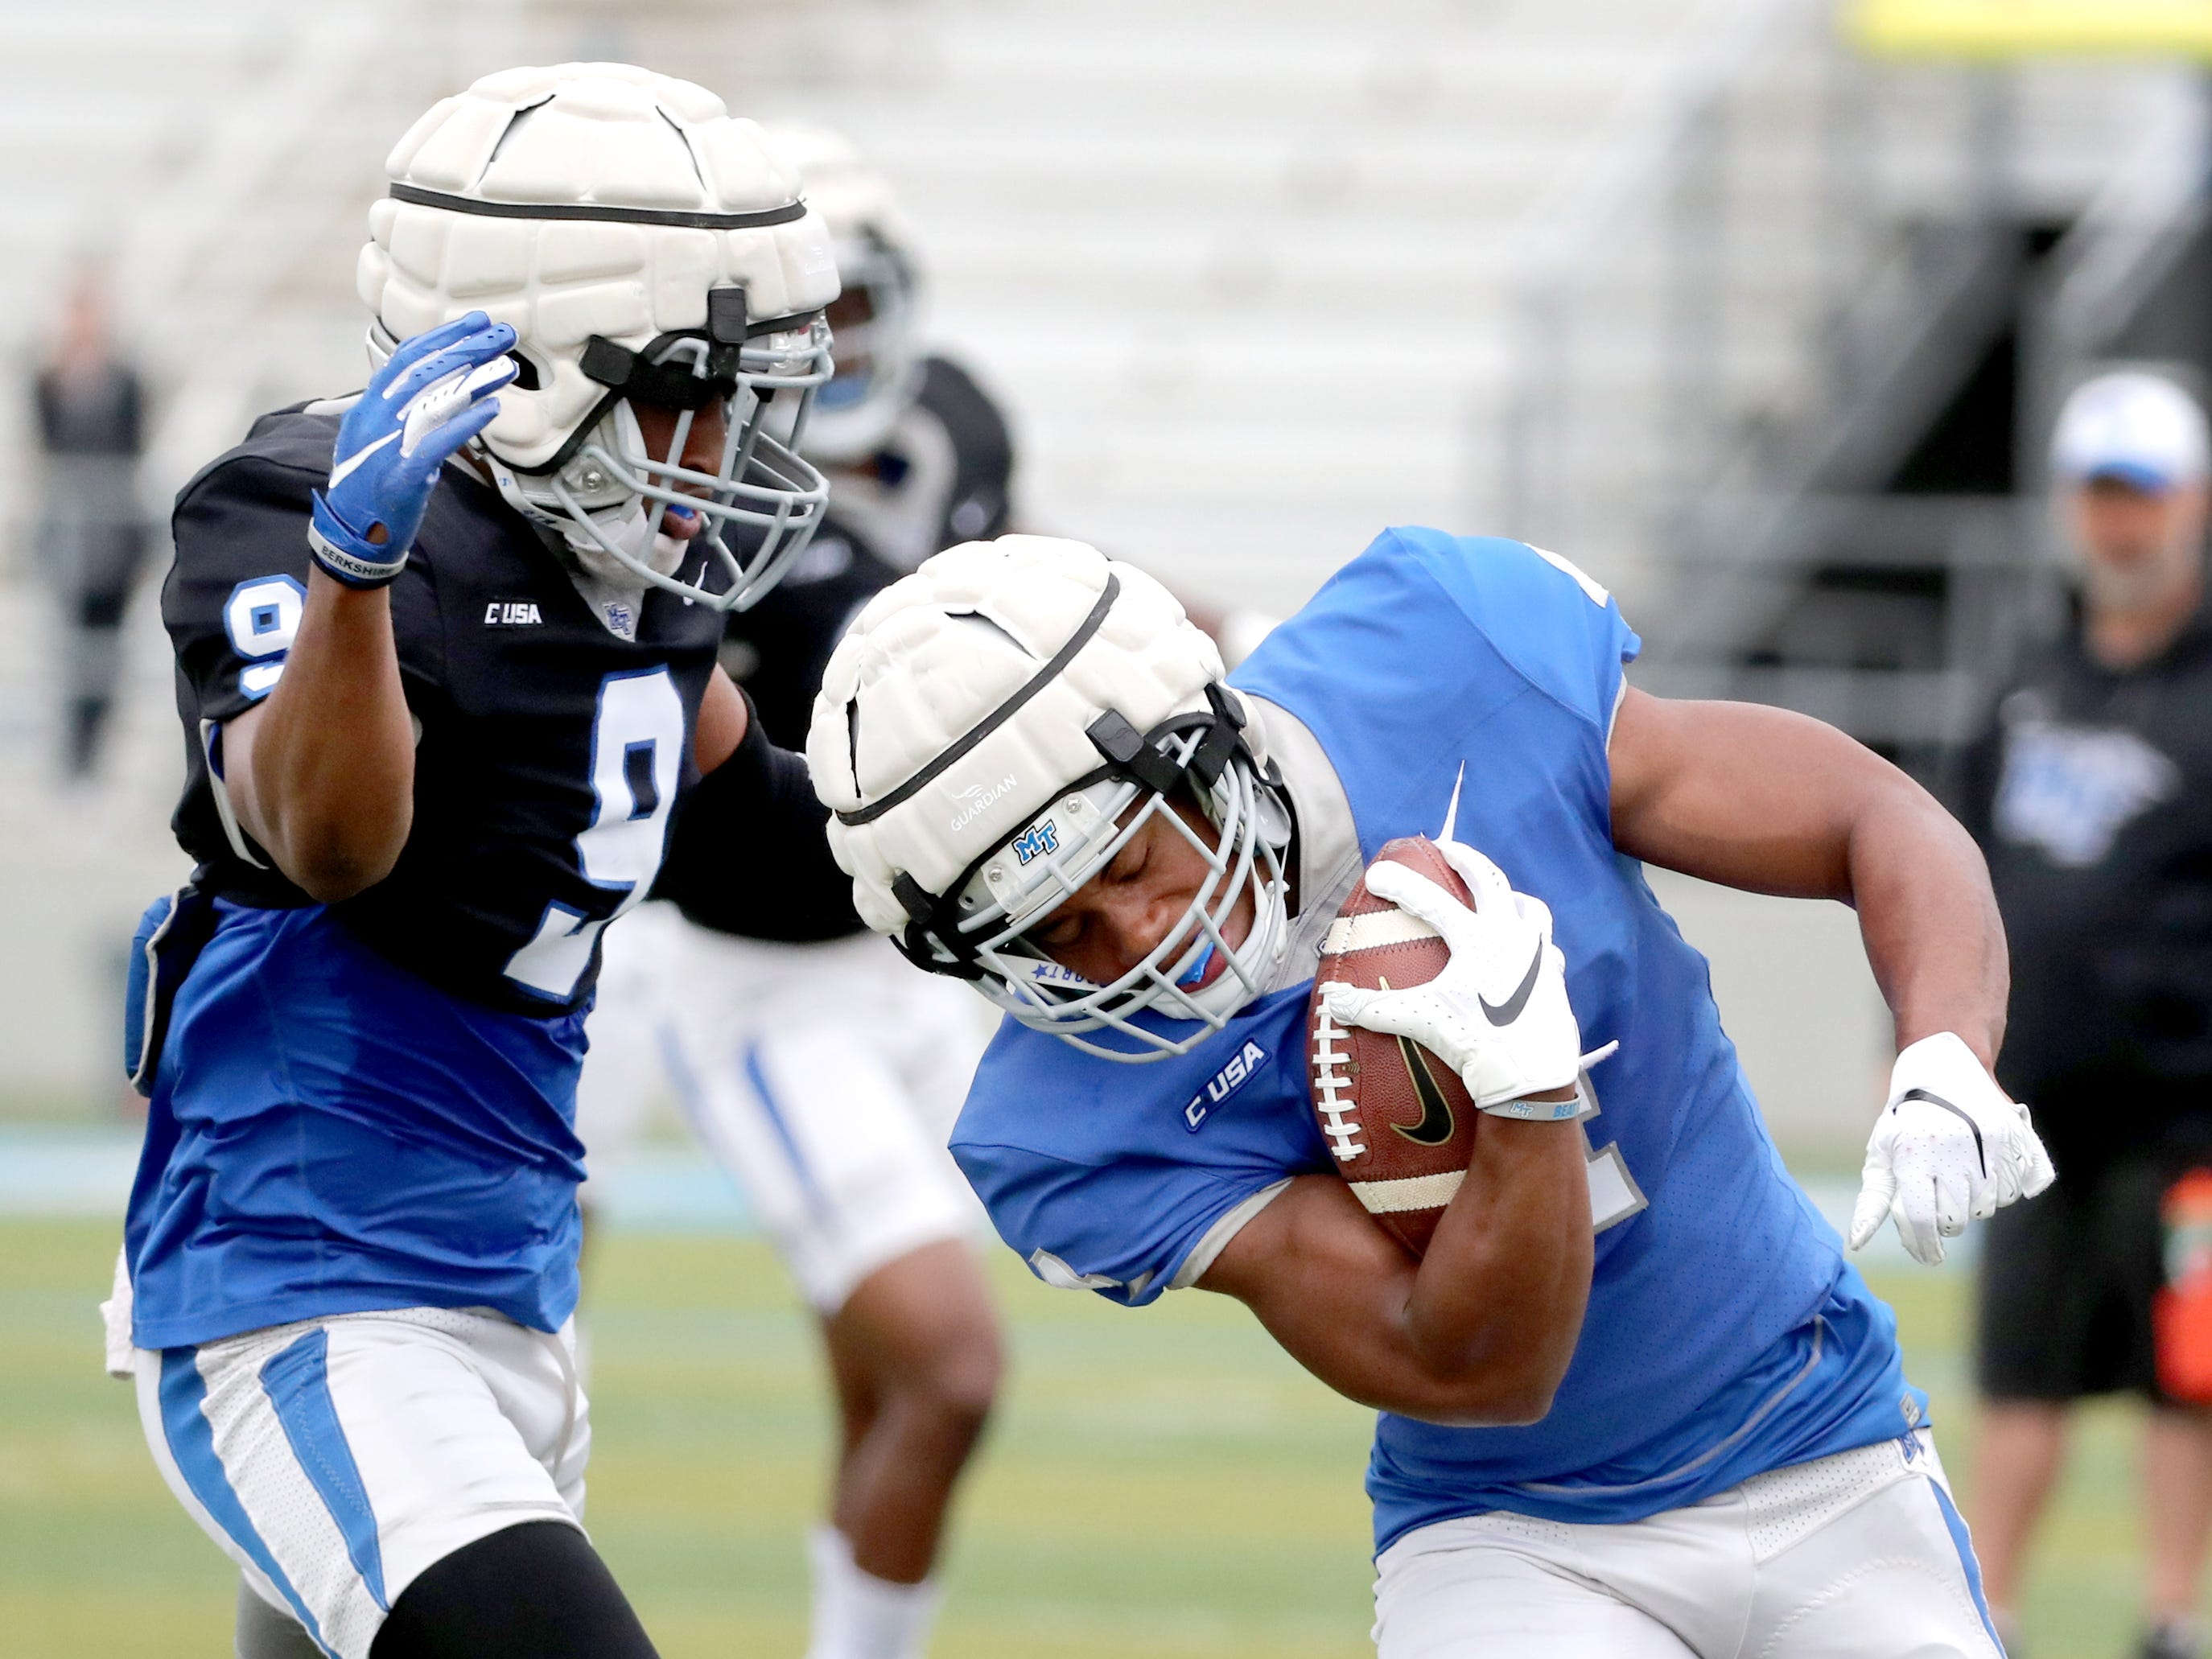 "MTSU's running back D'Monte Kemp (4) runs the ball as MTSU's safety Jourdan Sweet (9) moves in for a tackle during MTSU's Blue-White Spring Finale held on Saturday April 13, 2019, at MTSU's Johnny ""Red"" Floyd Stadium."